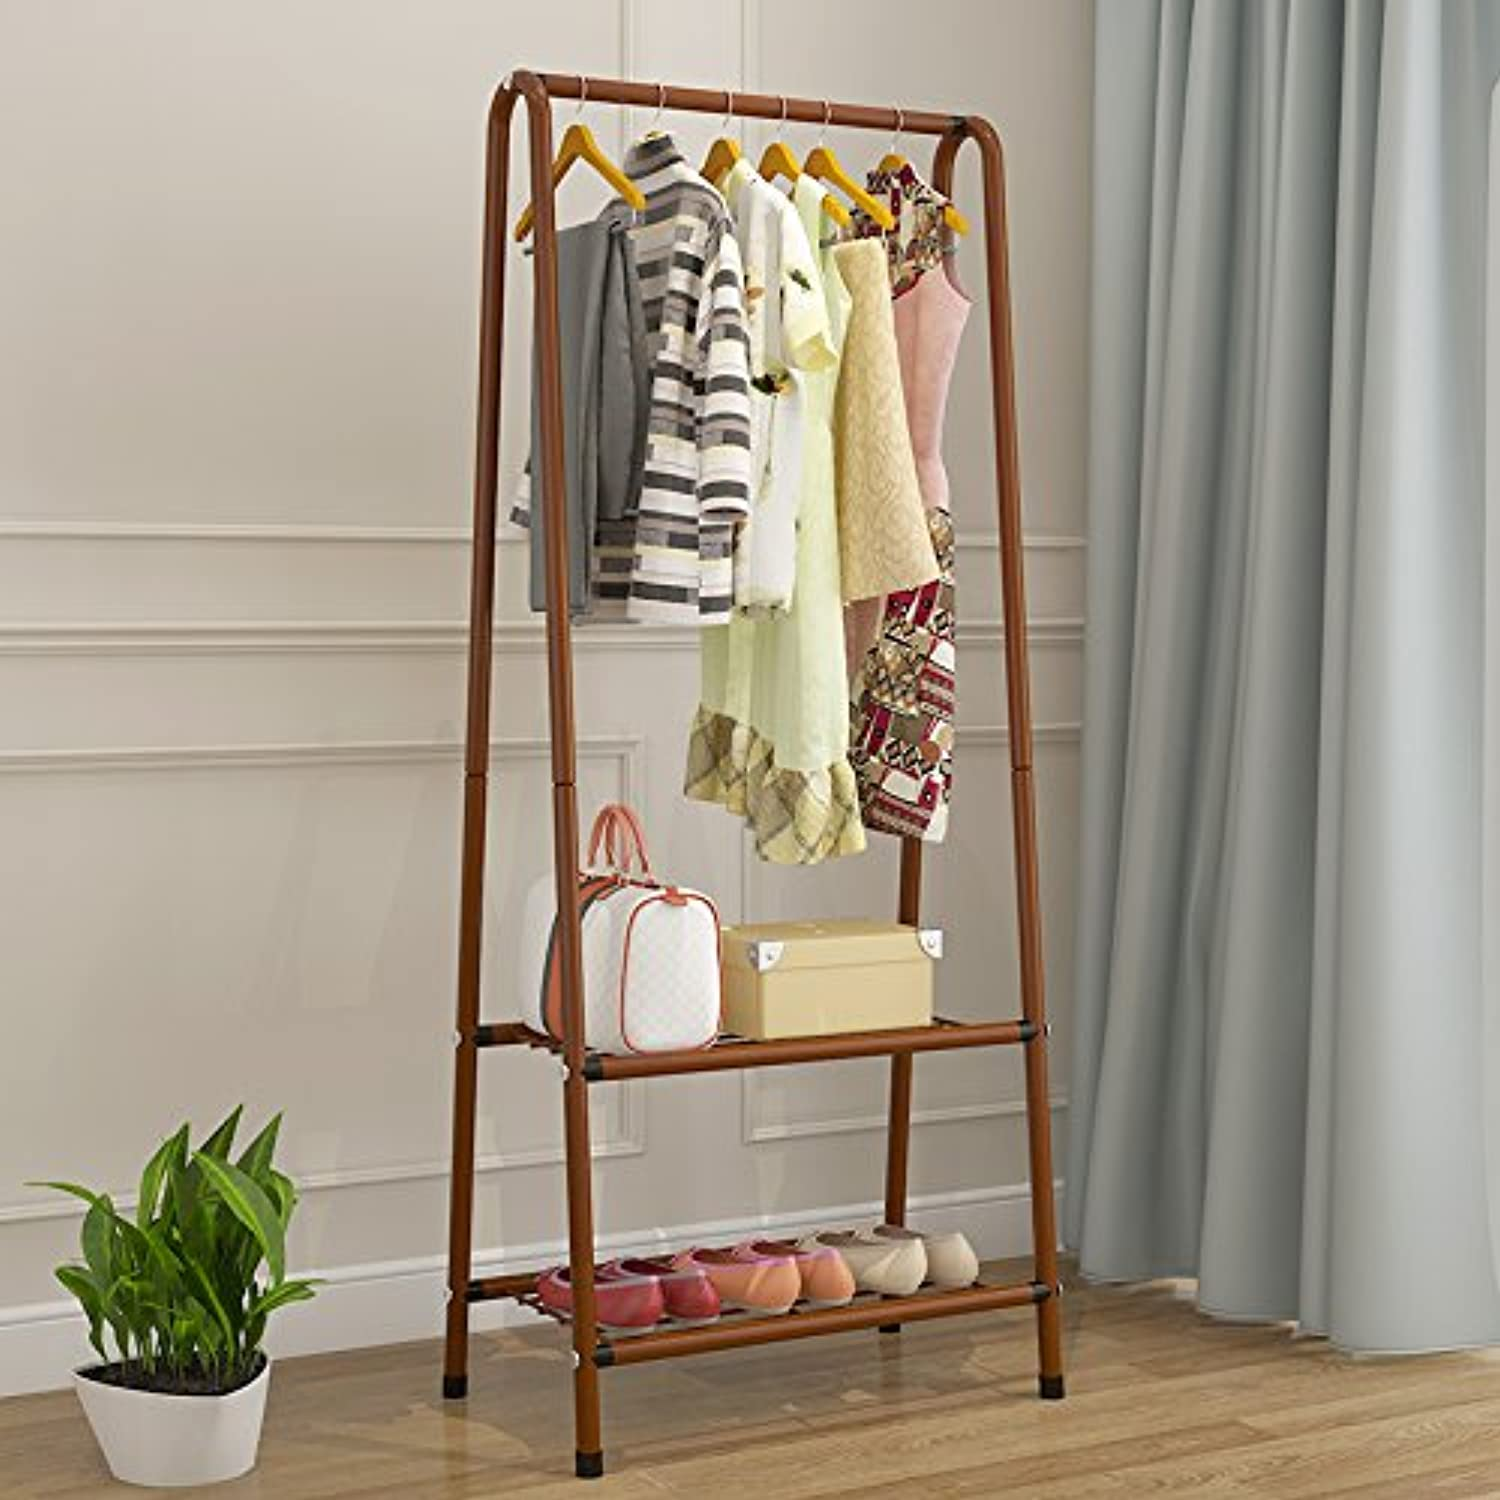 Simple Simple Modern Living Room Floor Coat Rack Hanger Bedroom Storage Rack Wrought Iron Coat Rack